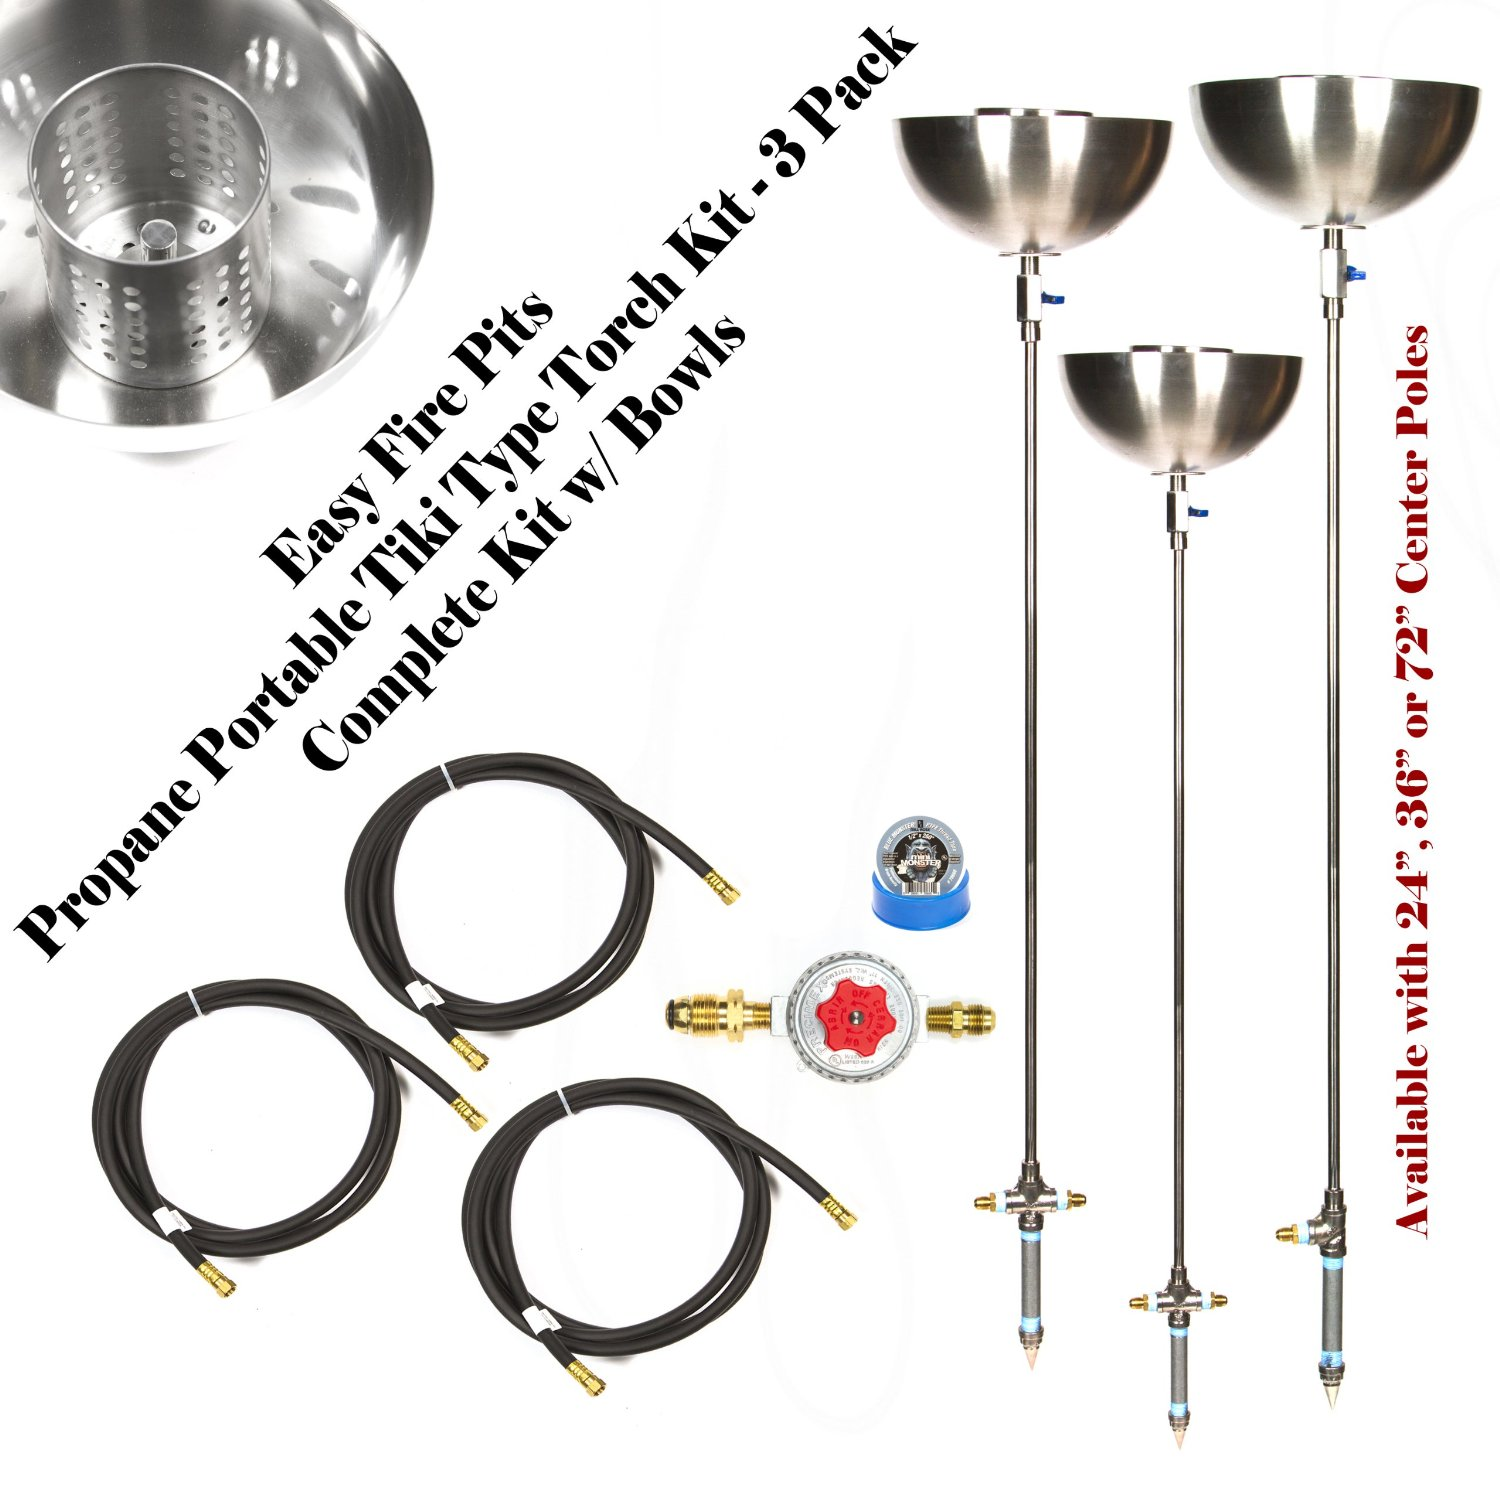 Create Your Own DIY (3 Pack) Portable Propane 72″ Stainless Steel Tiki Type Torches w/ All Except Lp Tank; Torch72b4bck-3pk